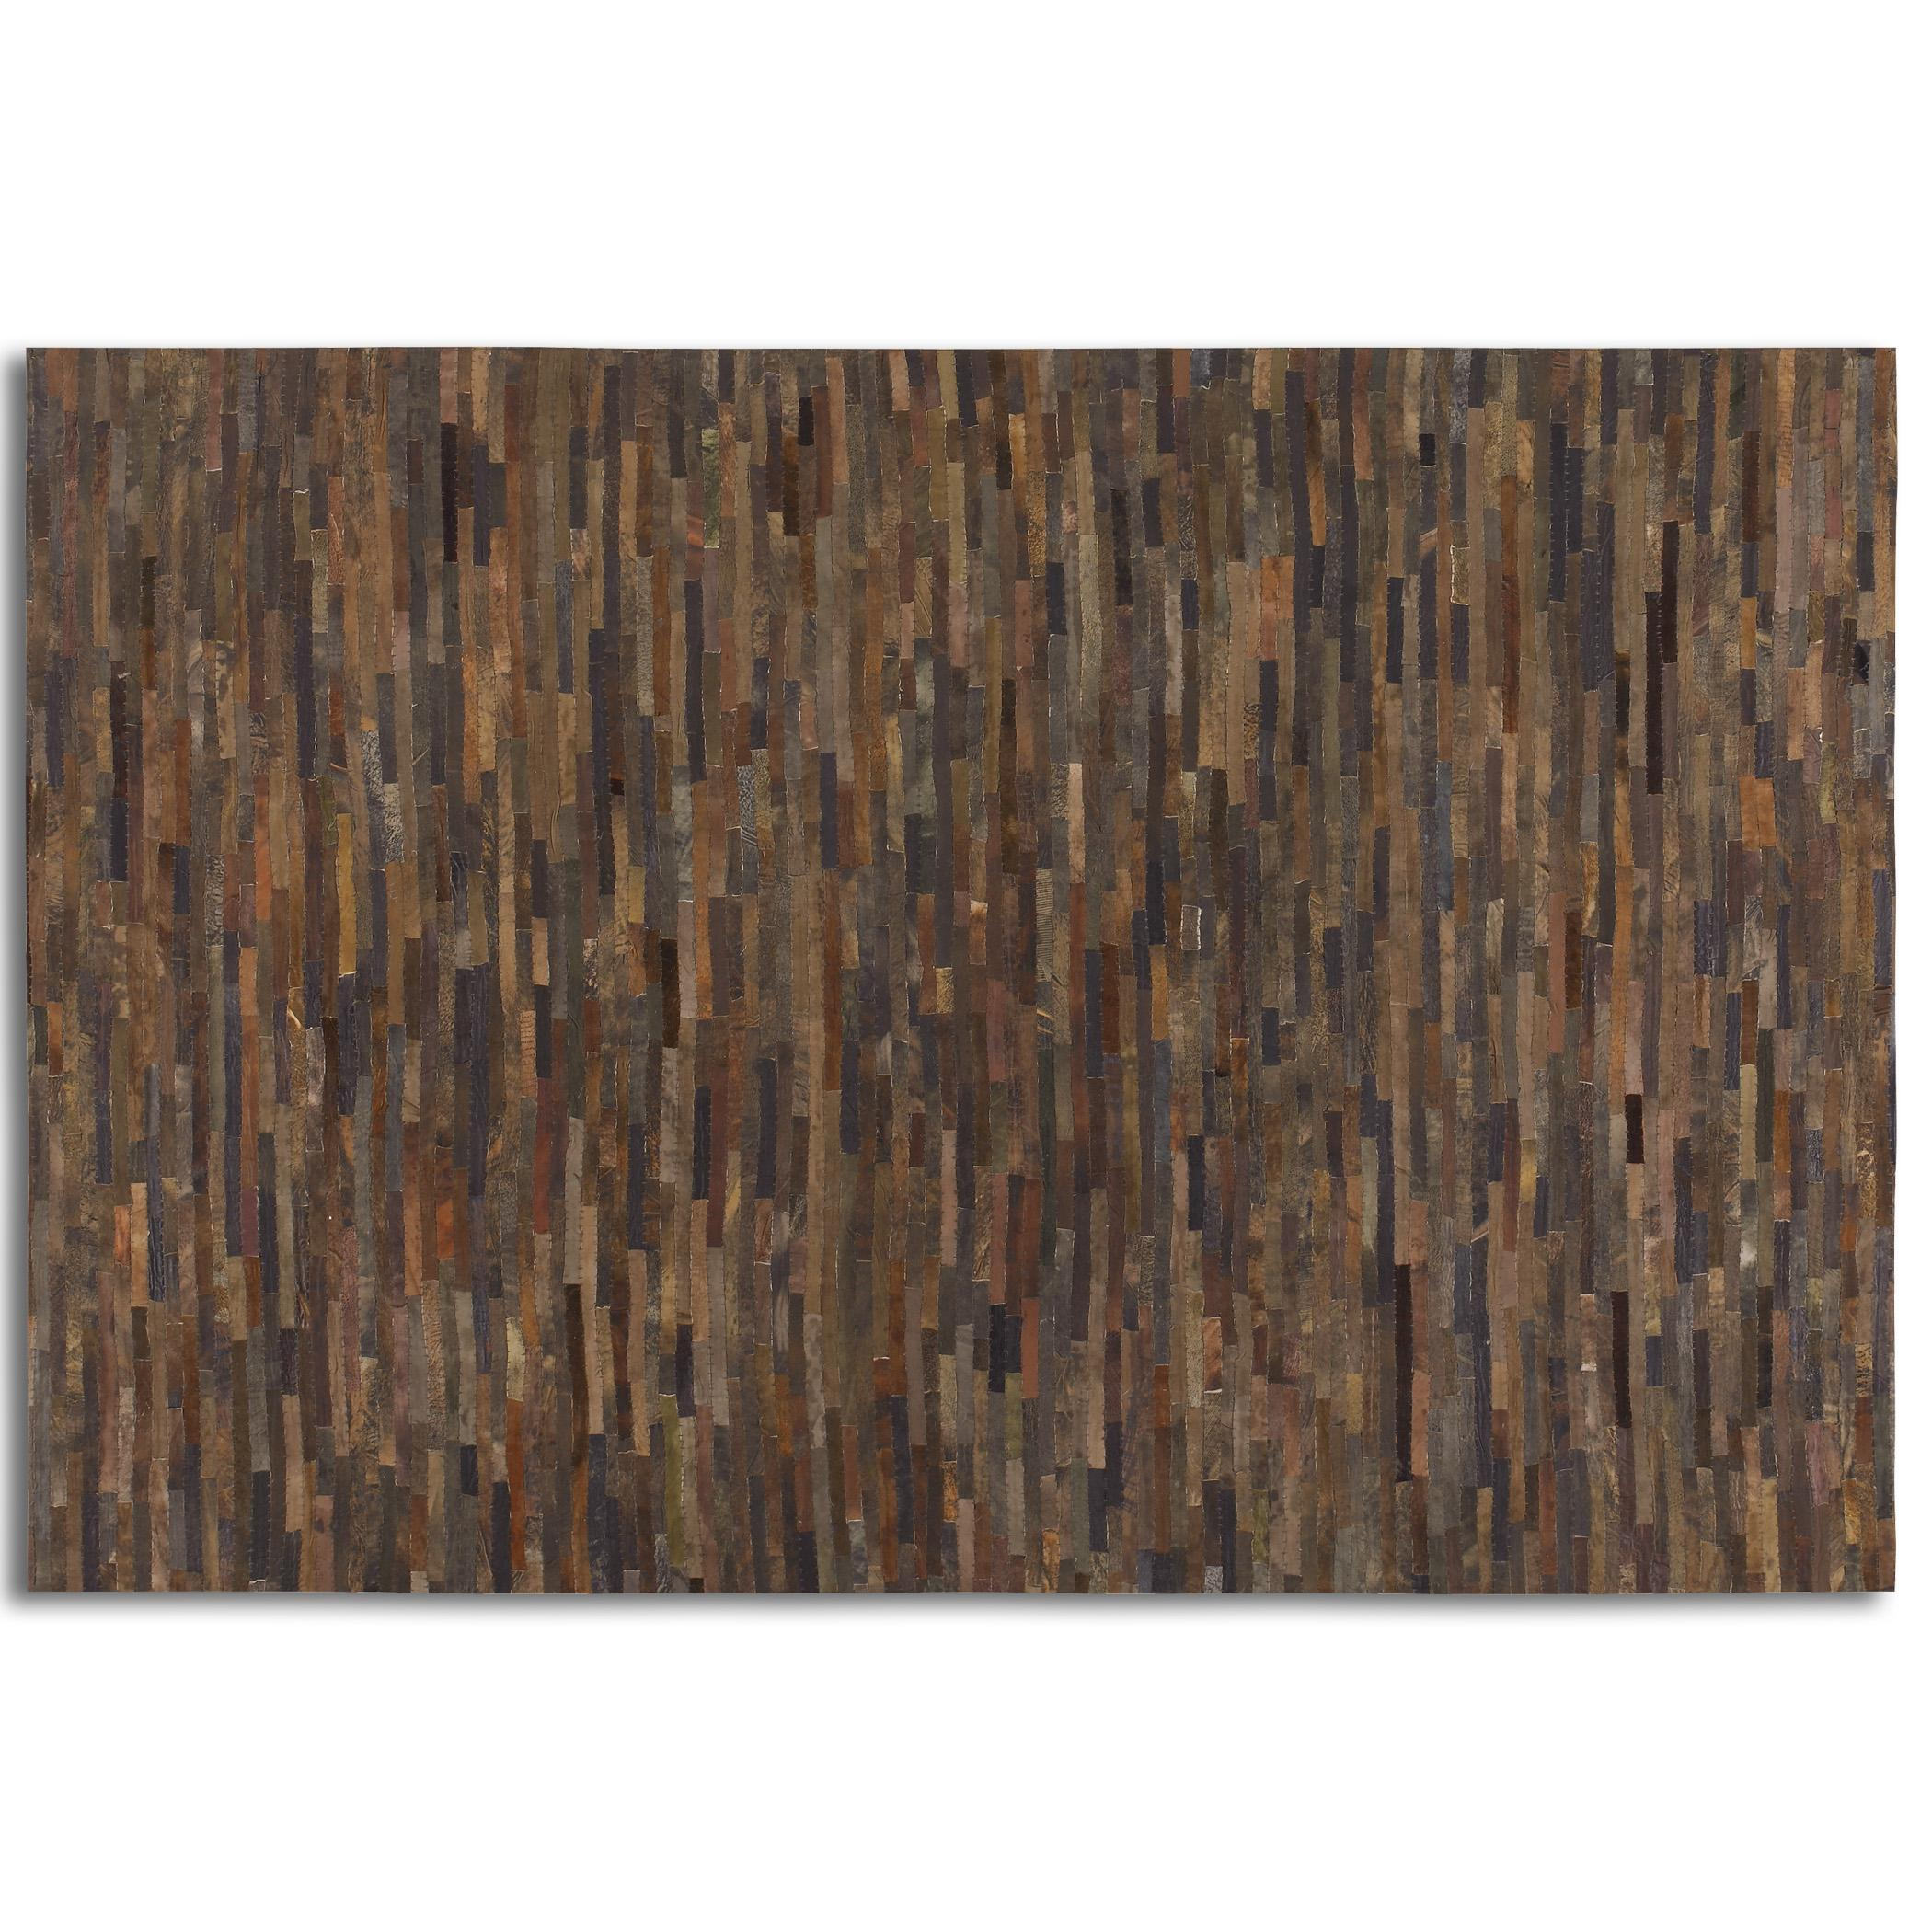 Uttermost Rugs Malone 8 X 10 Patchwork Rug - Item Number: 71049-8